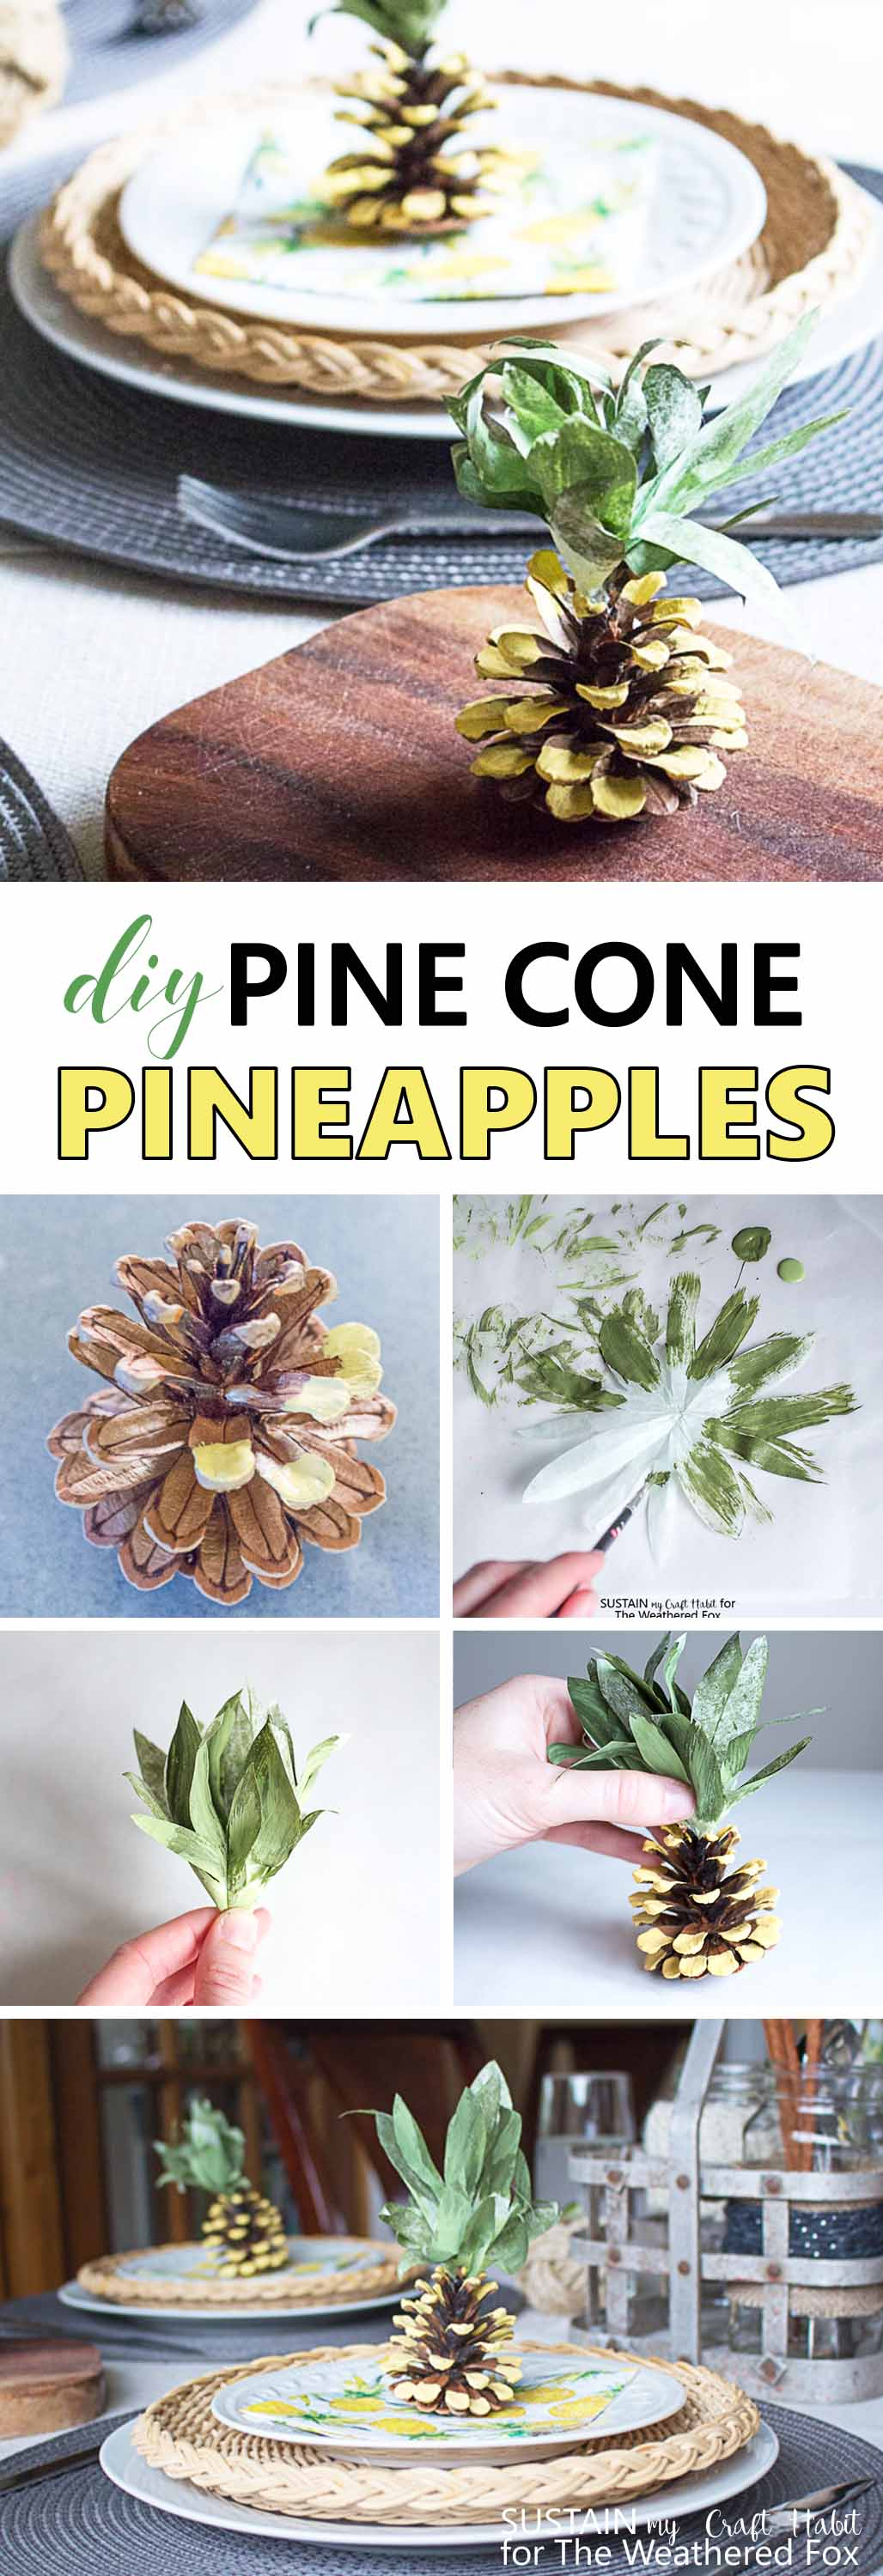 Too adorable! Make these adorable napkin weights for your next pineapple party! Tutorial for making DIY pine cone pineapples.